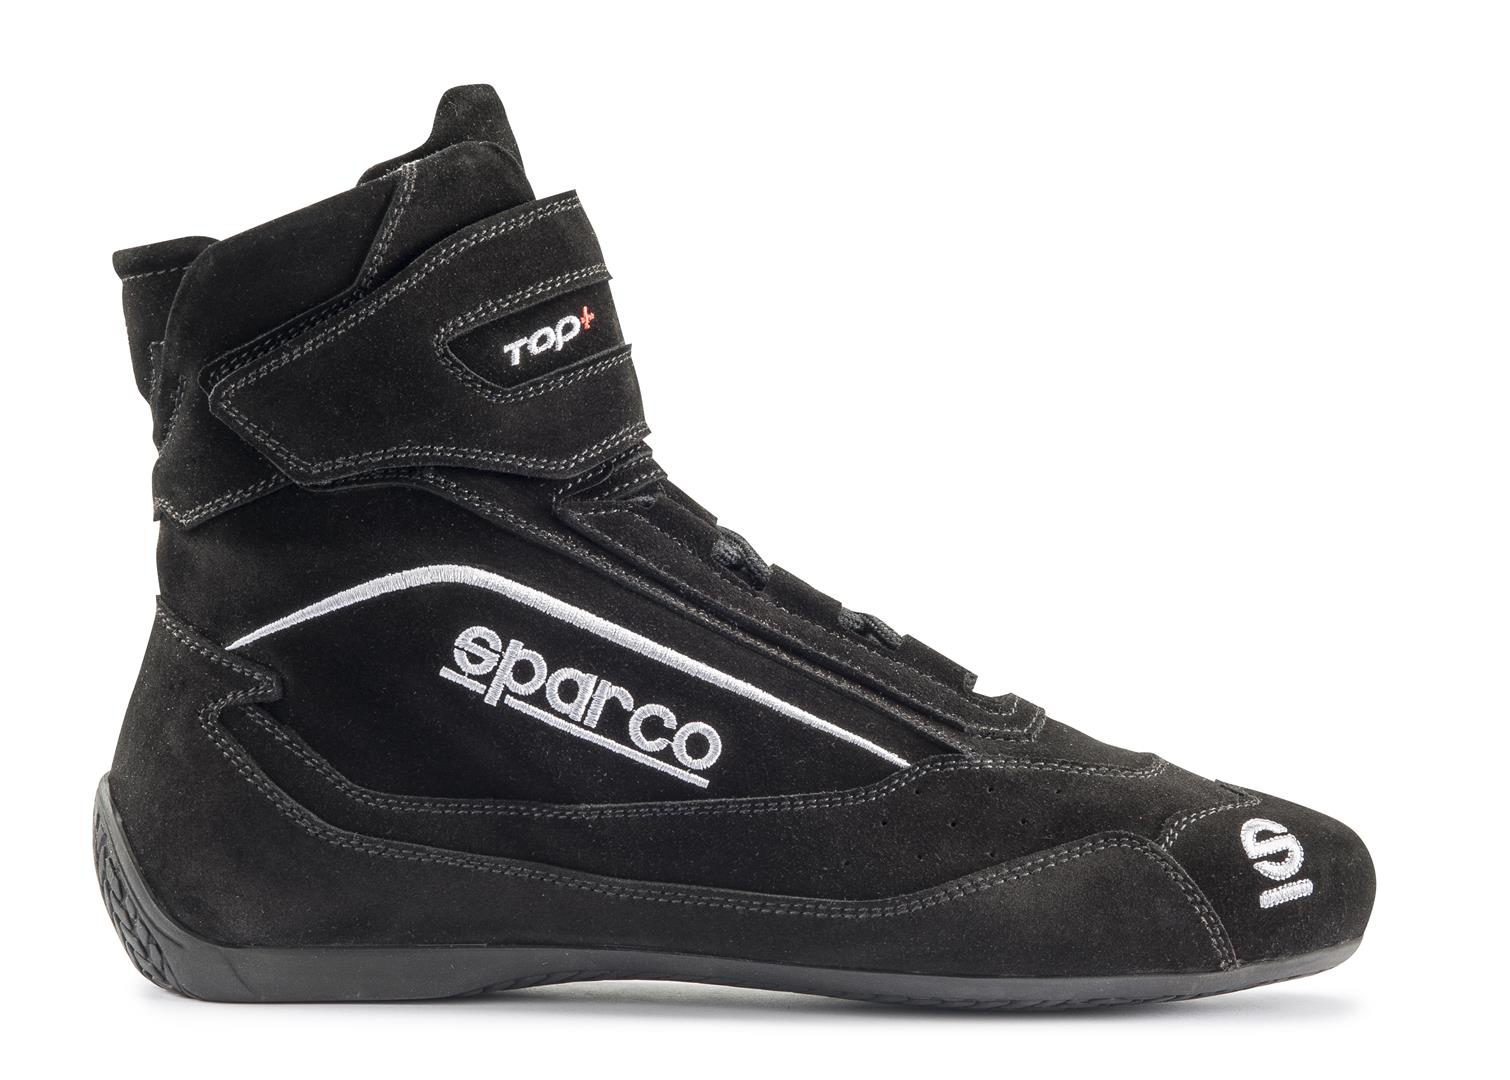 Sparco Black Top+ SH-5 Driving Shoes EU 36 | US 4.5 - 00121036NR